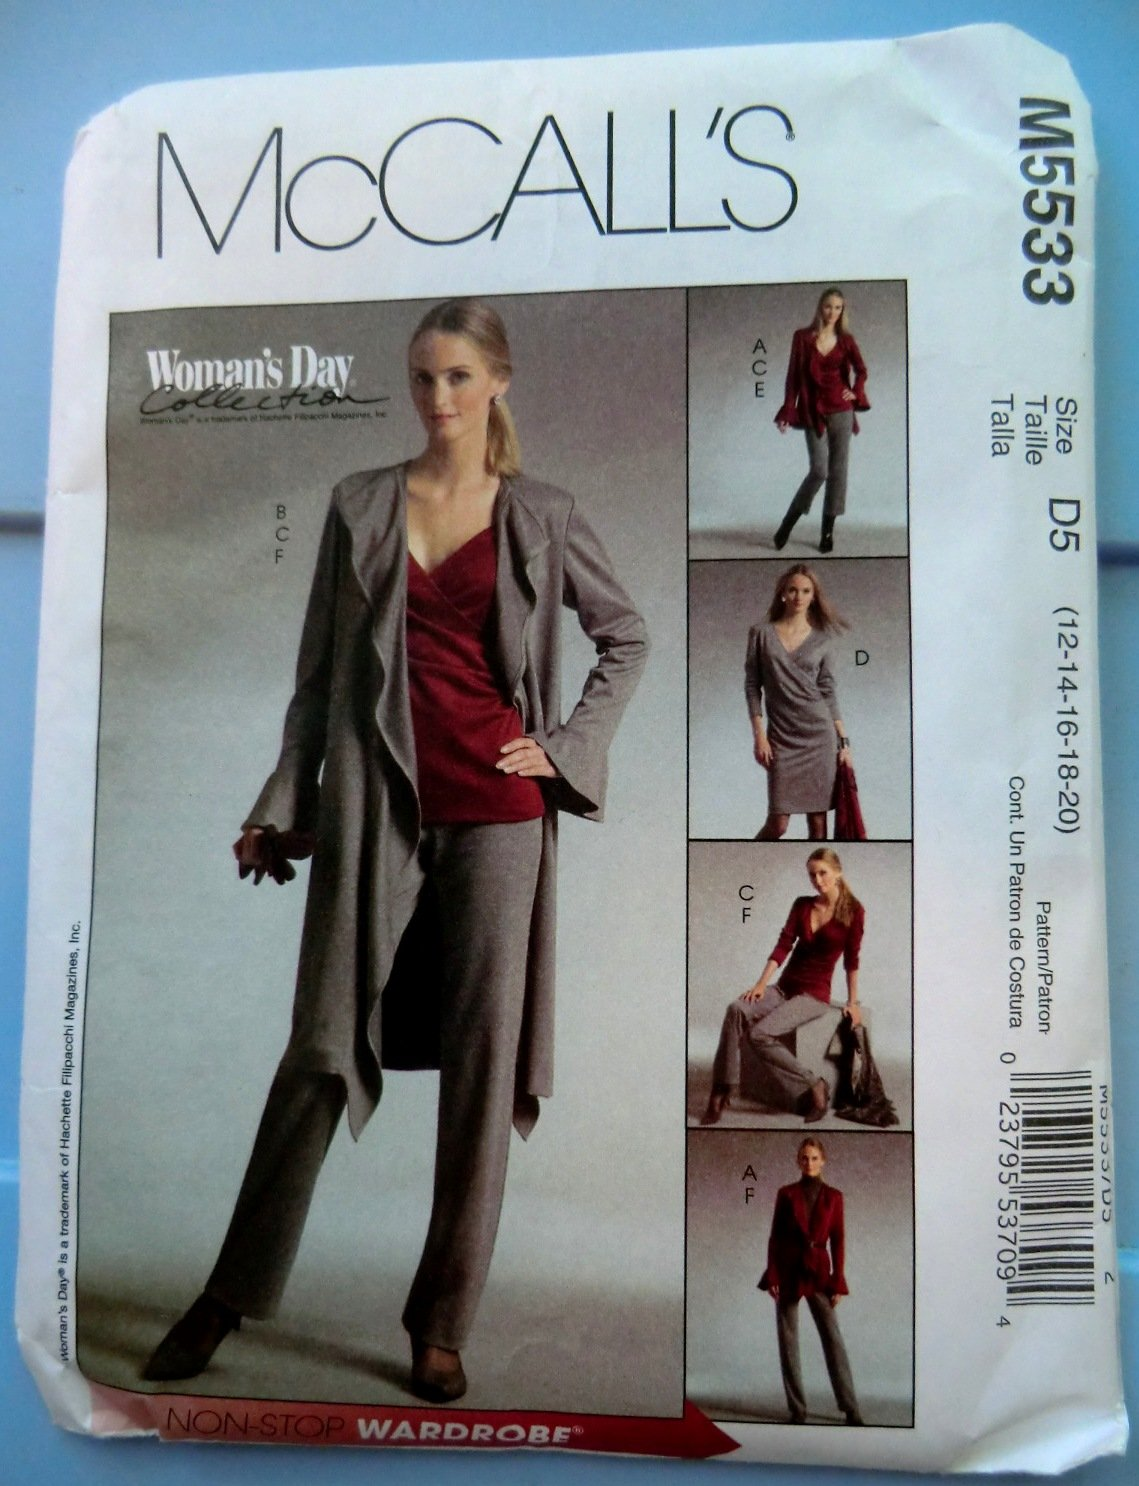 McCalls Pattern # 5533 UNCUT Misses STRETCH KNITS ONLY Jacket Top Dress Pants Size 12 14 16 18 20